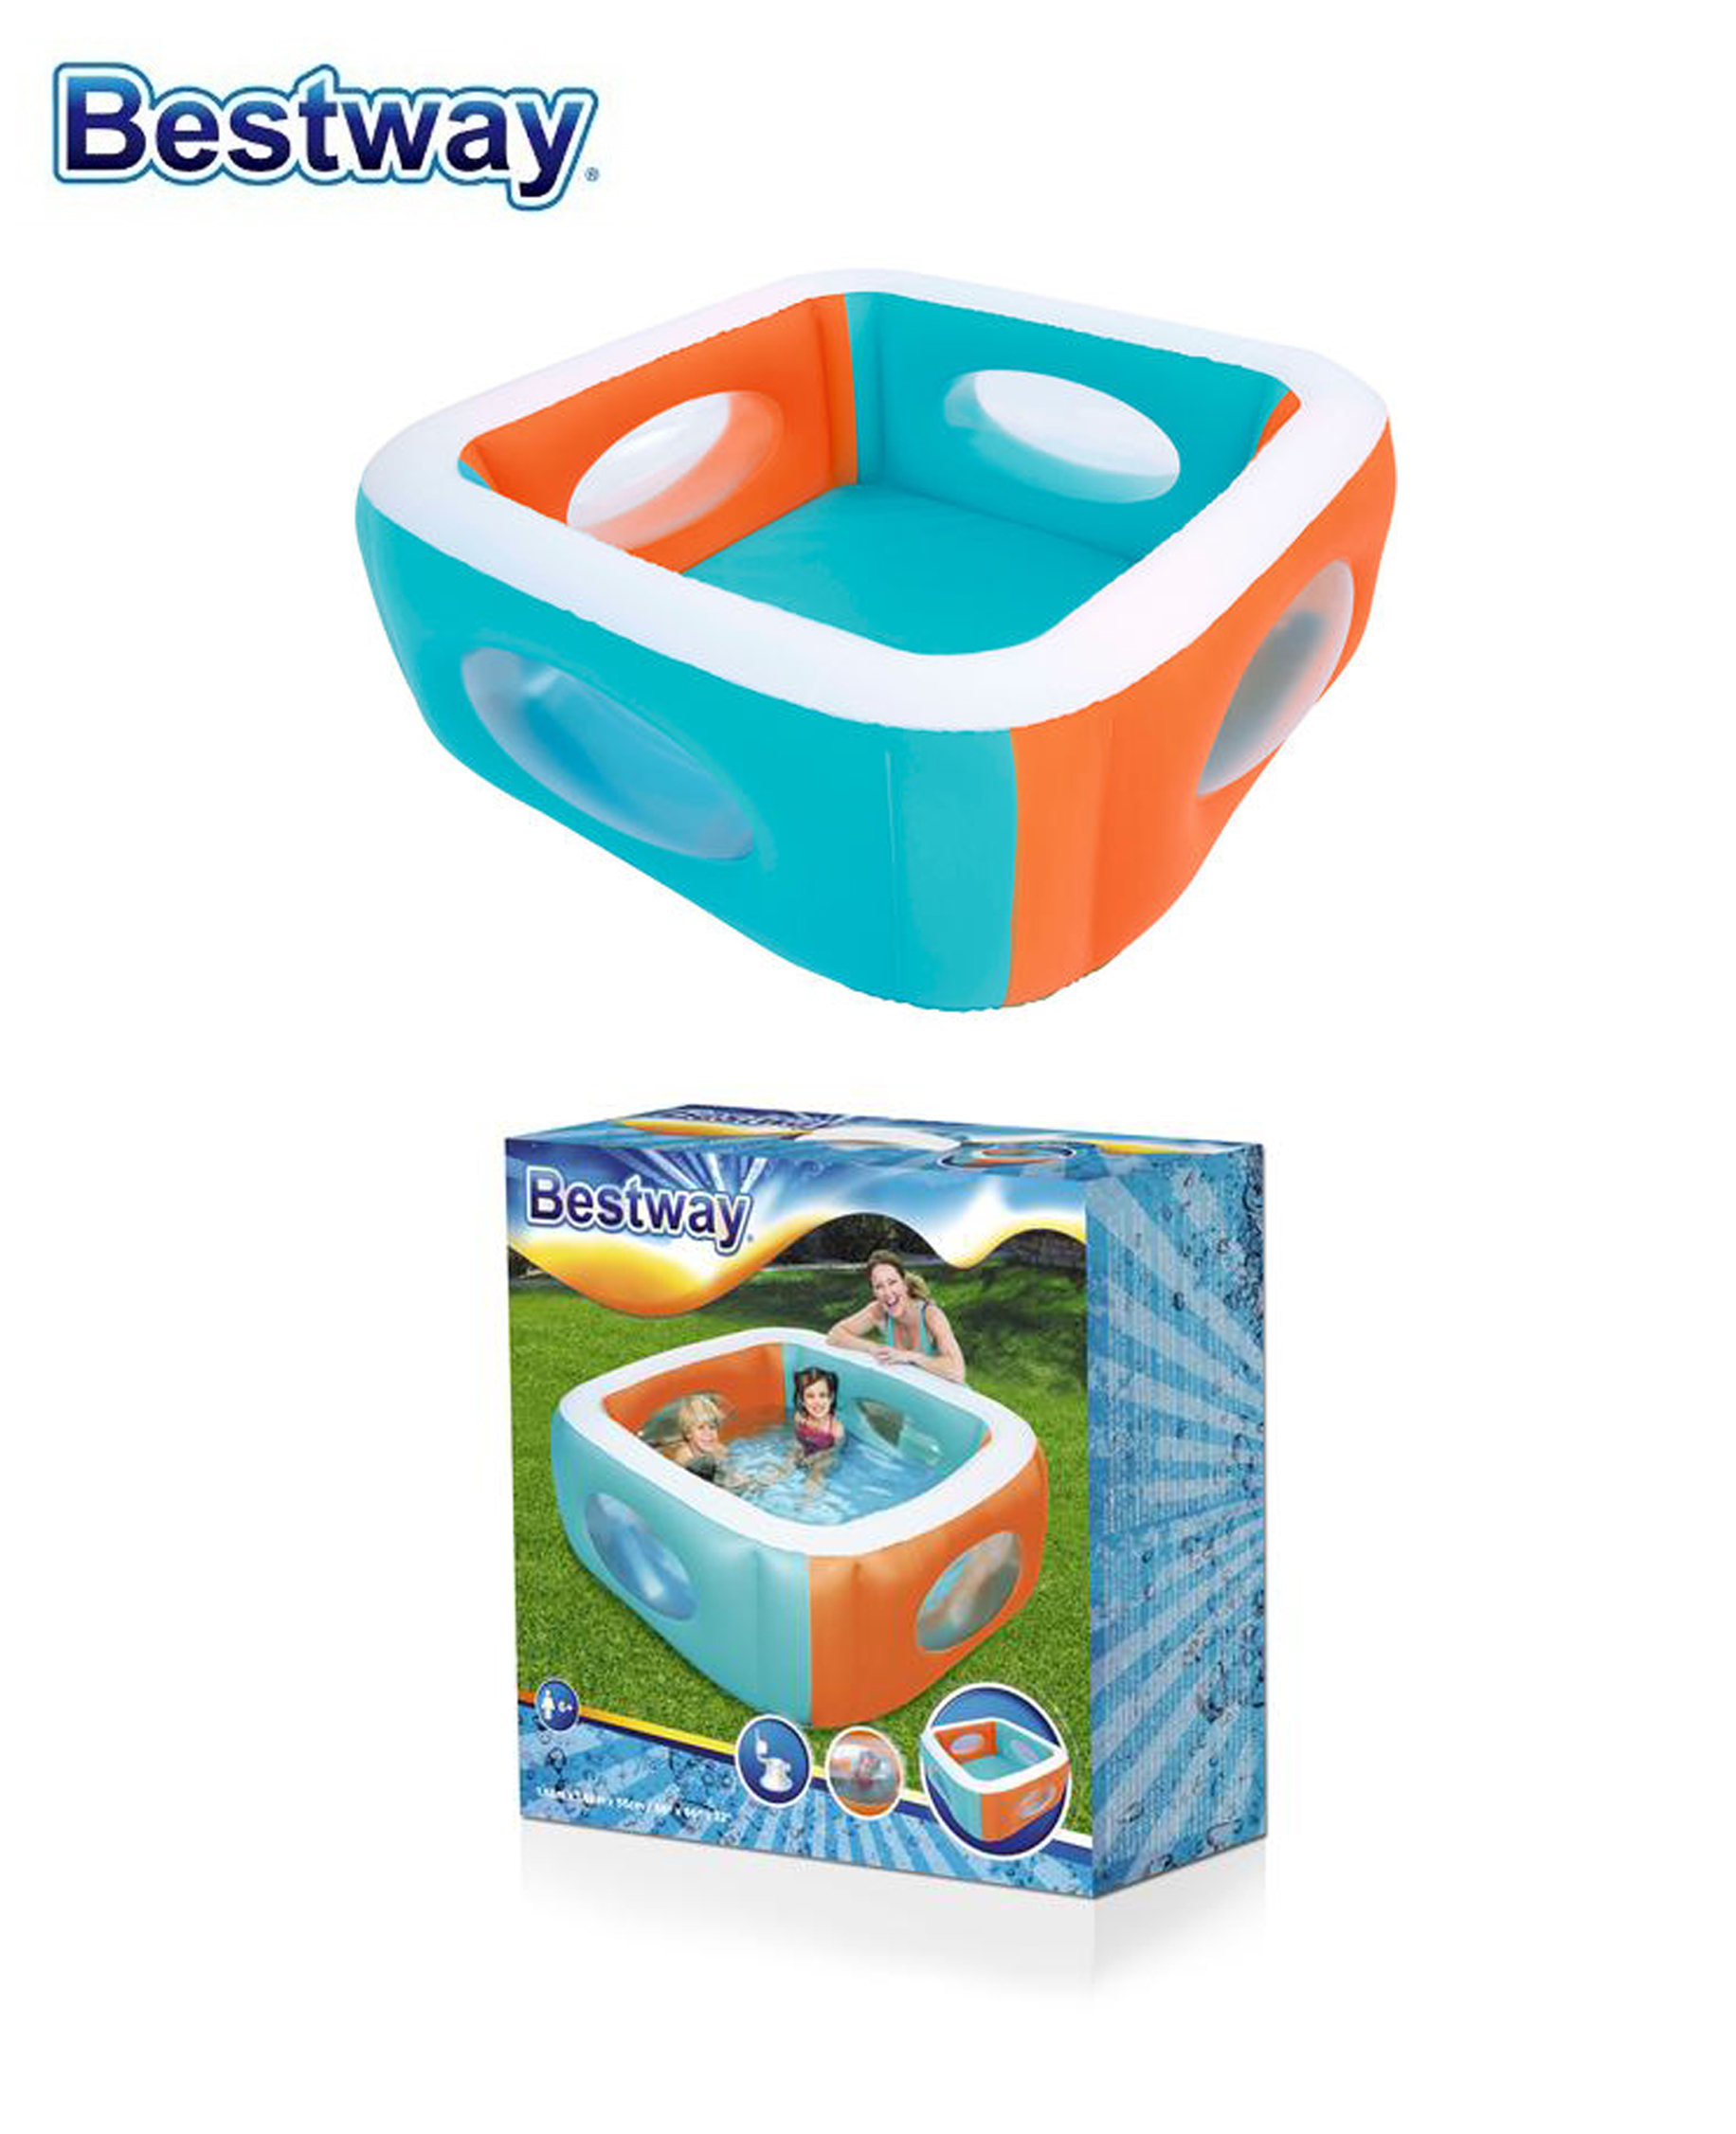 Piscine Window Pataugeoire 168 X 168 X 56 Cm - Bestway